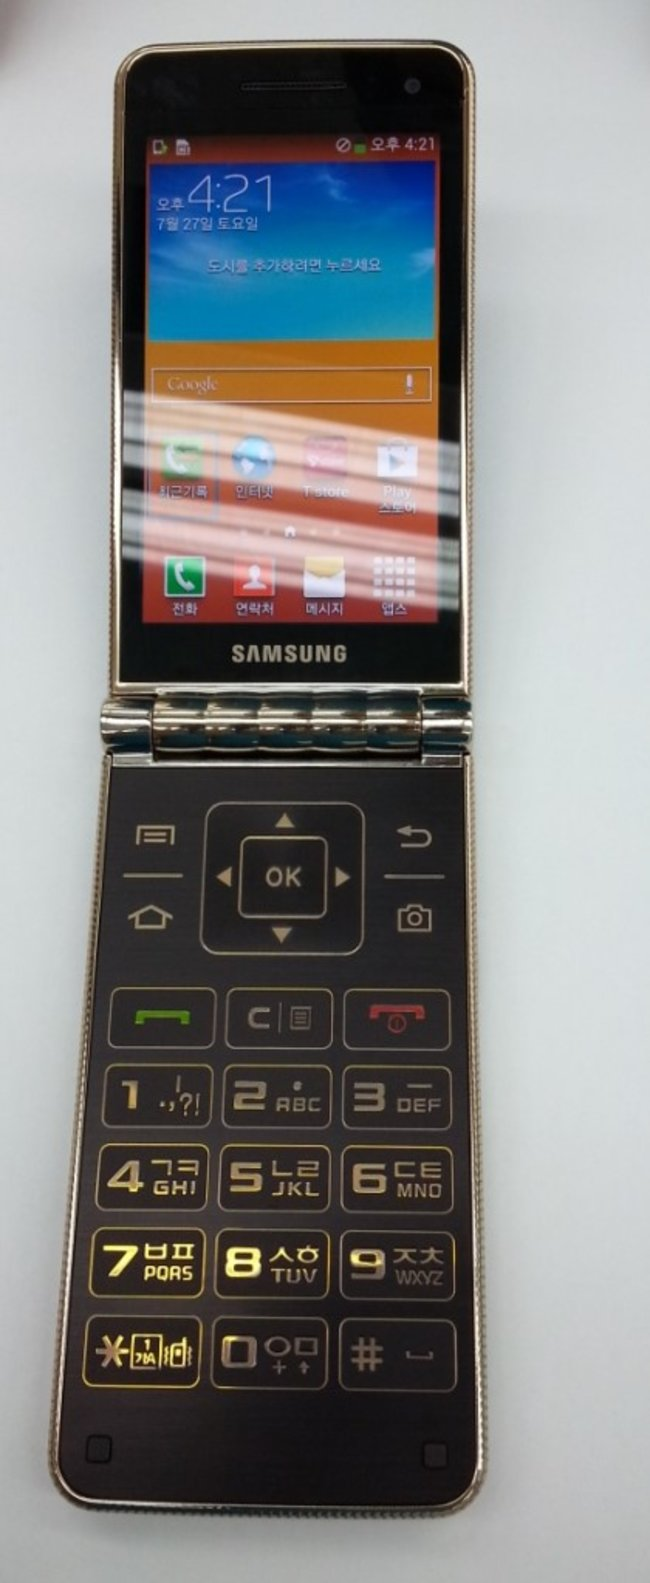 Samsung Galaxy Folder images leaked, revealing Android flip phone with dual displays - photo 2